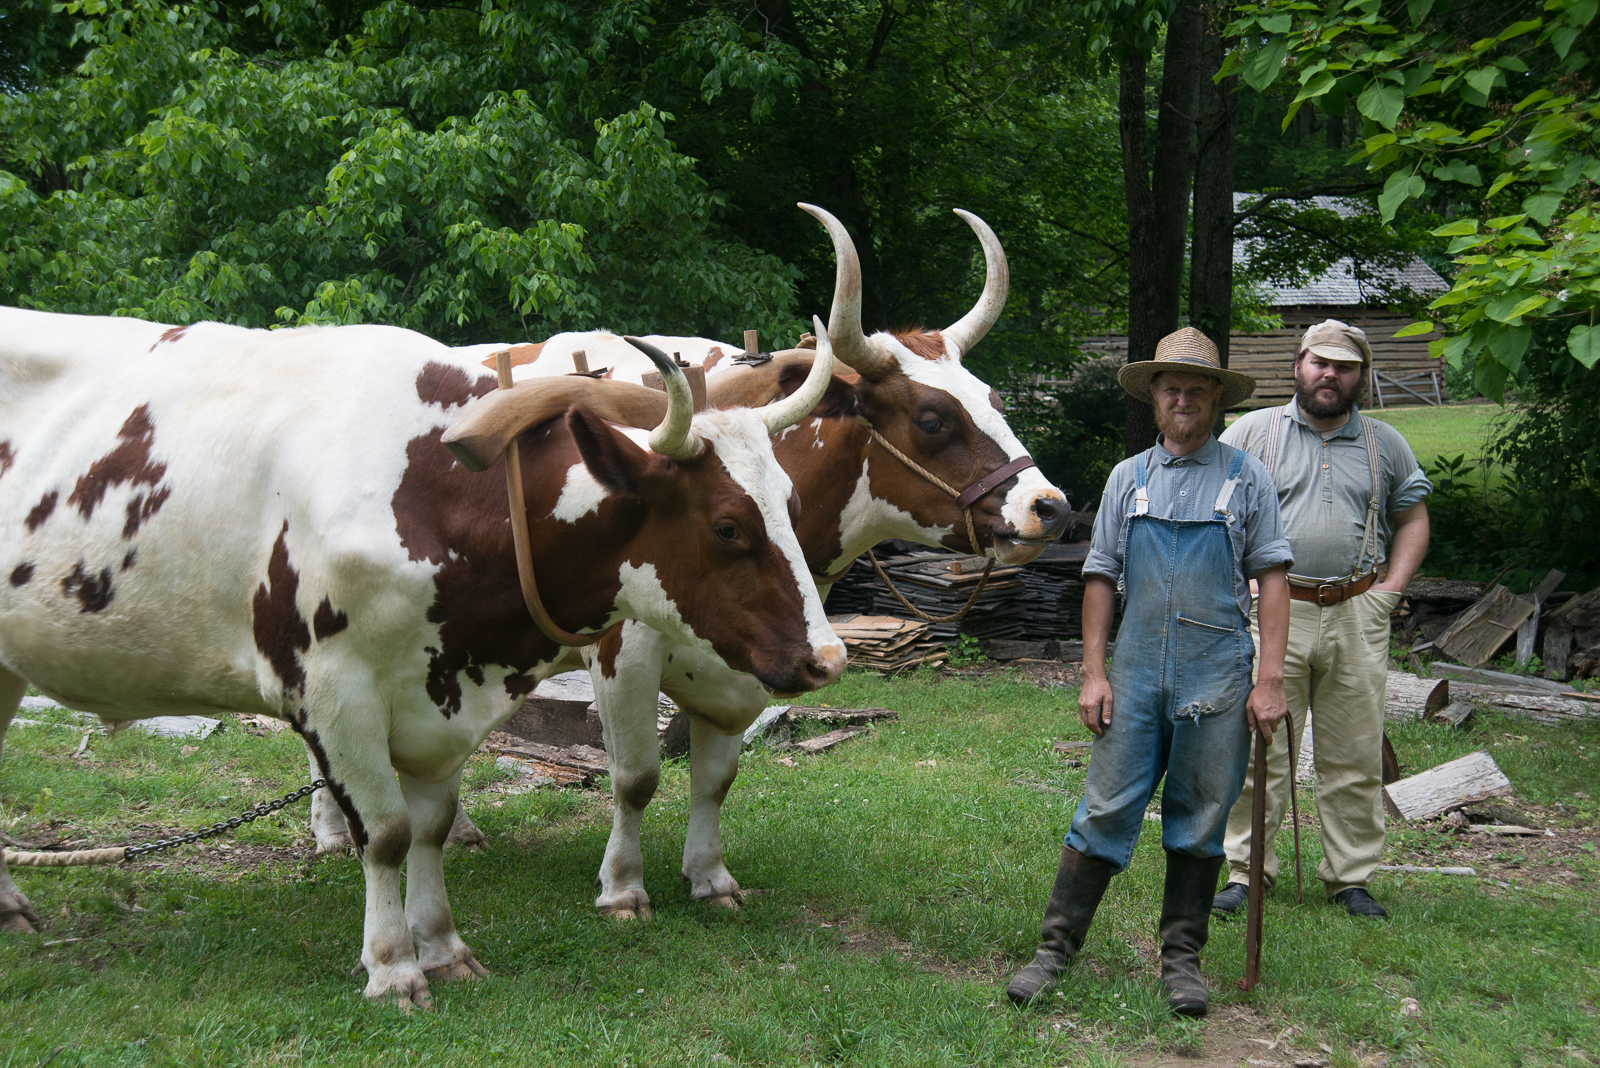 The man in blue knows more about these oxen than probably most farmers. He was so interesting and very humble. These oxen can carry so much weight that they rarely are used anymore for farming in West Ky. They sink into the ground once it's plowed, we need these to start our garden each year. But if they step on a toe, an emergency room visit is in the future.